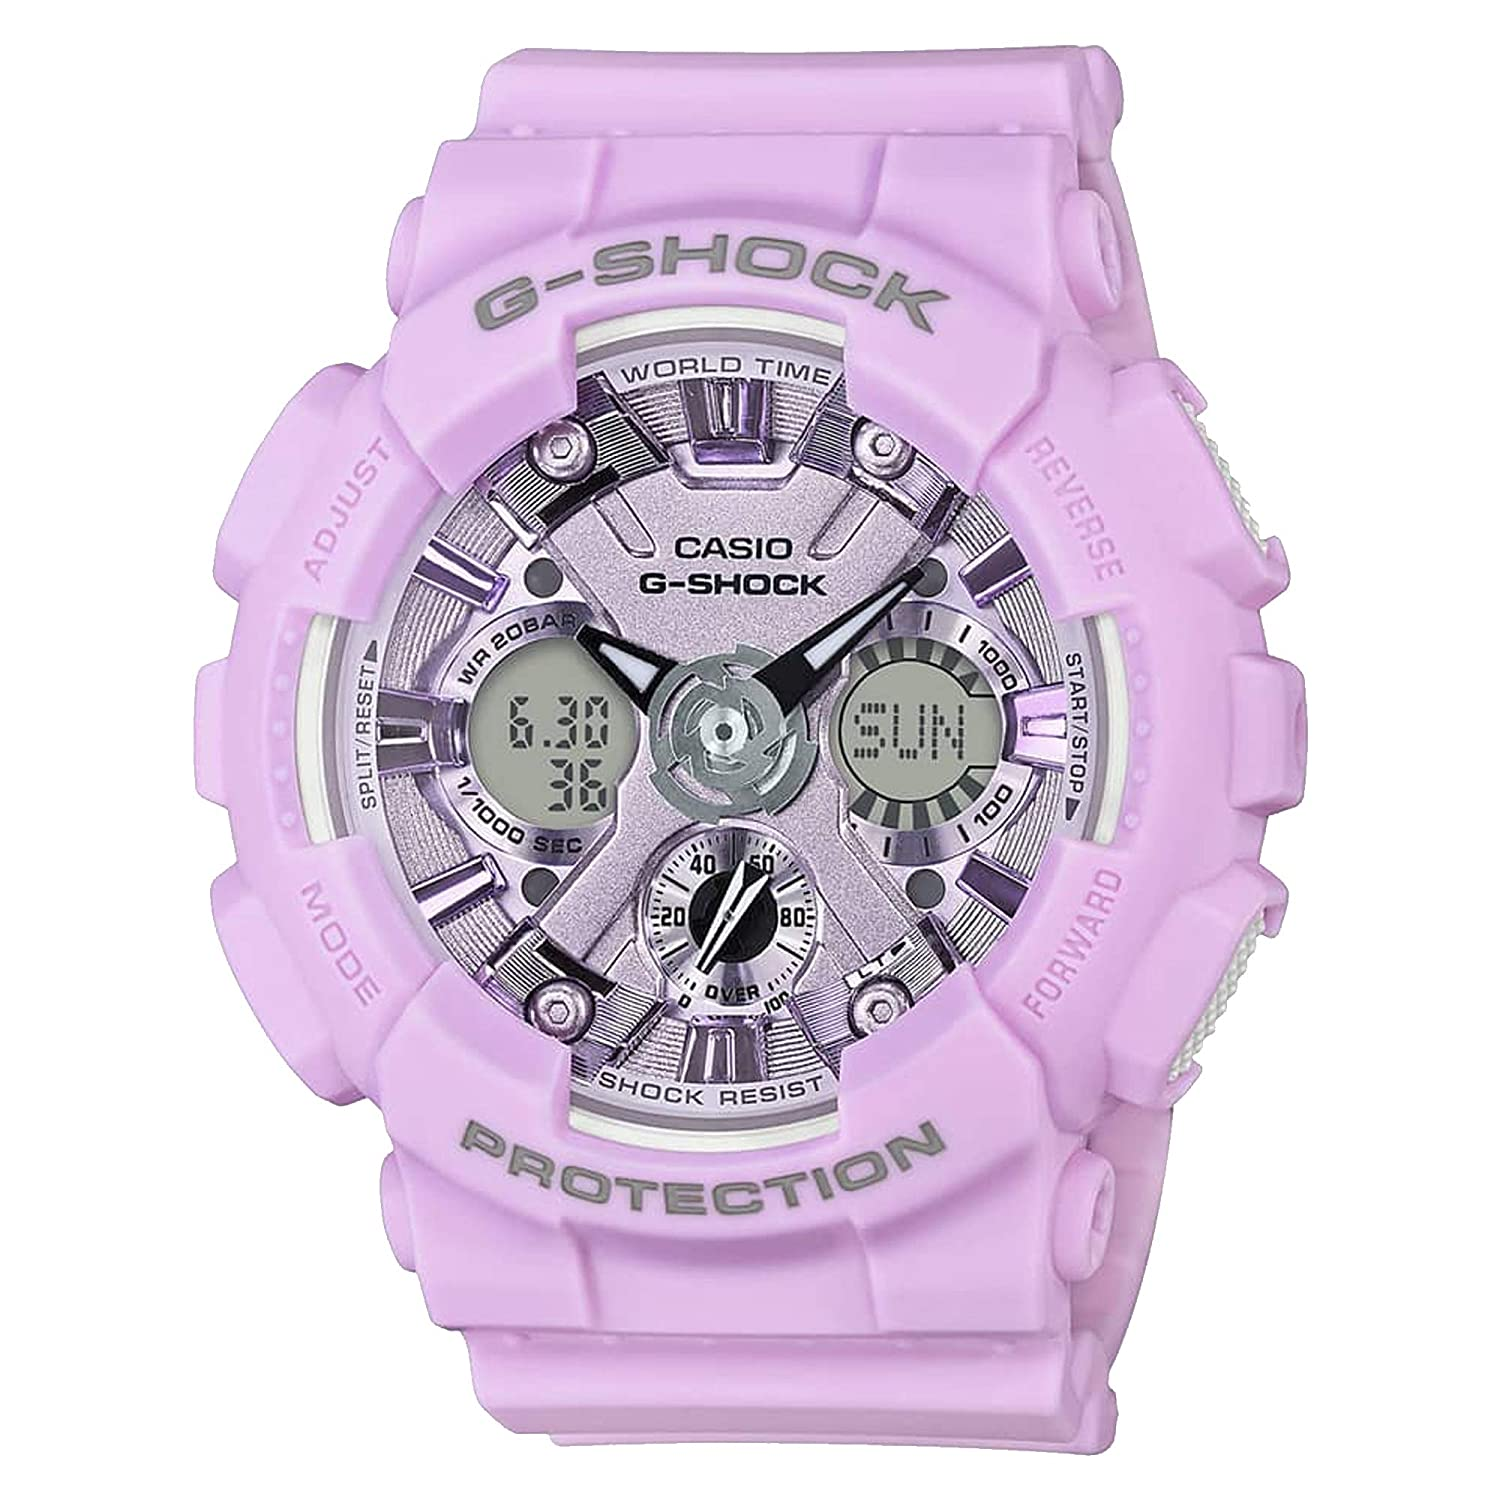 G-Shock By Casio Unisex S Series GMAS120DP-6A Watch Purple